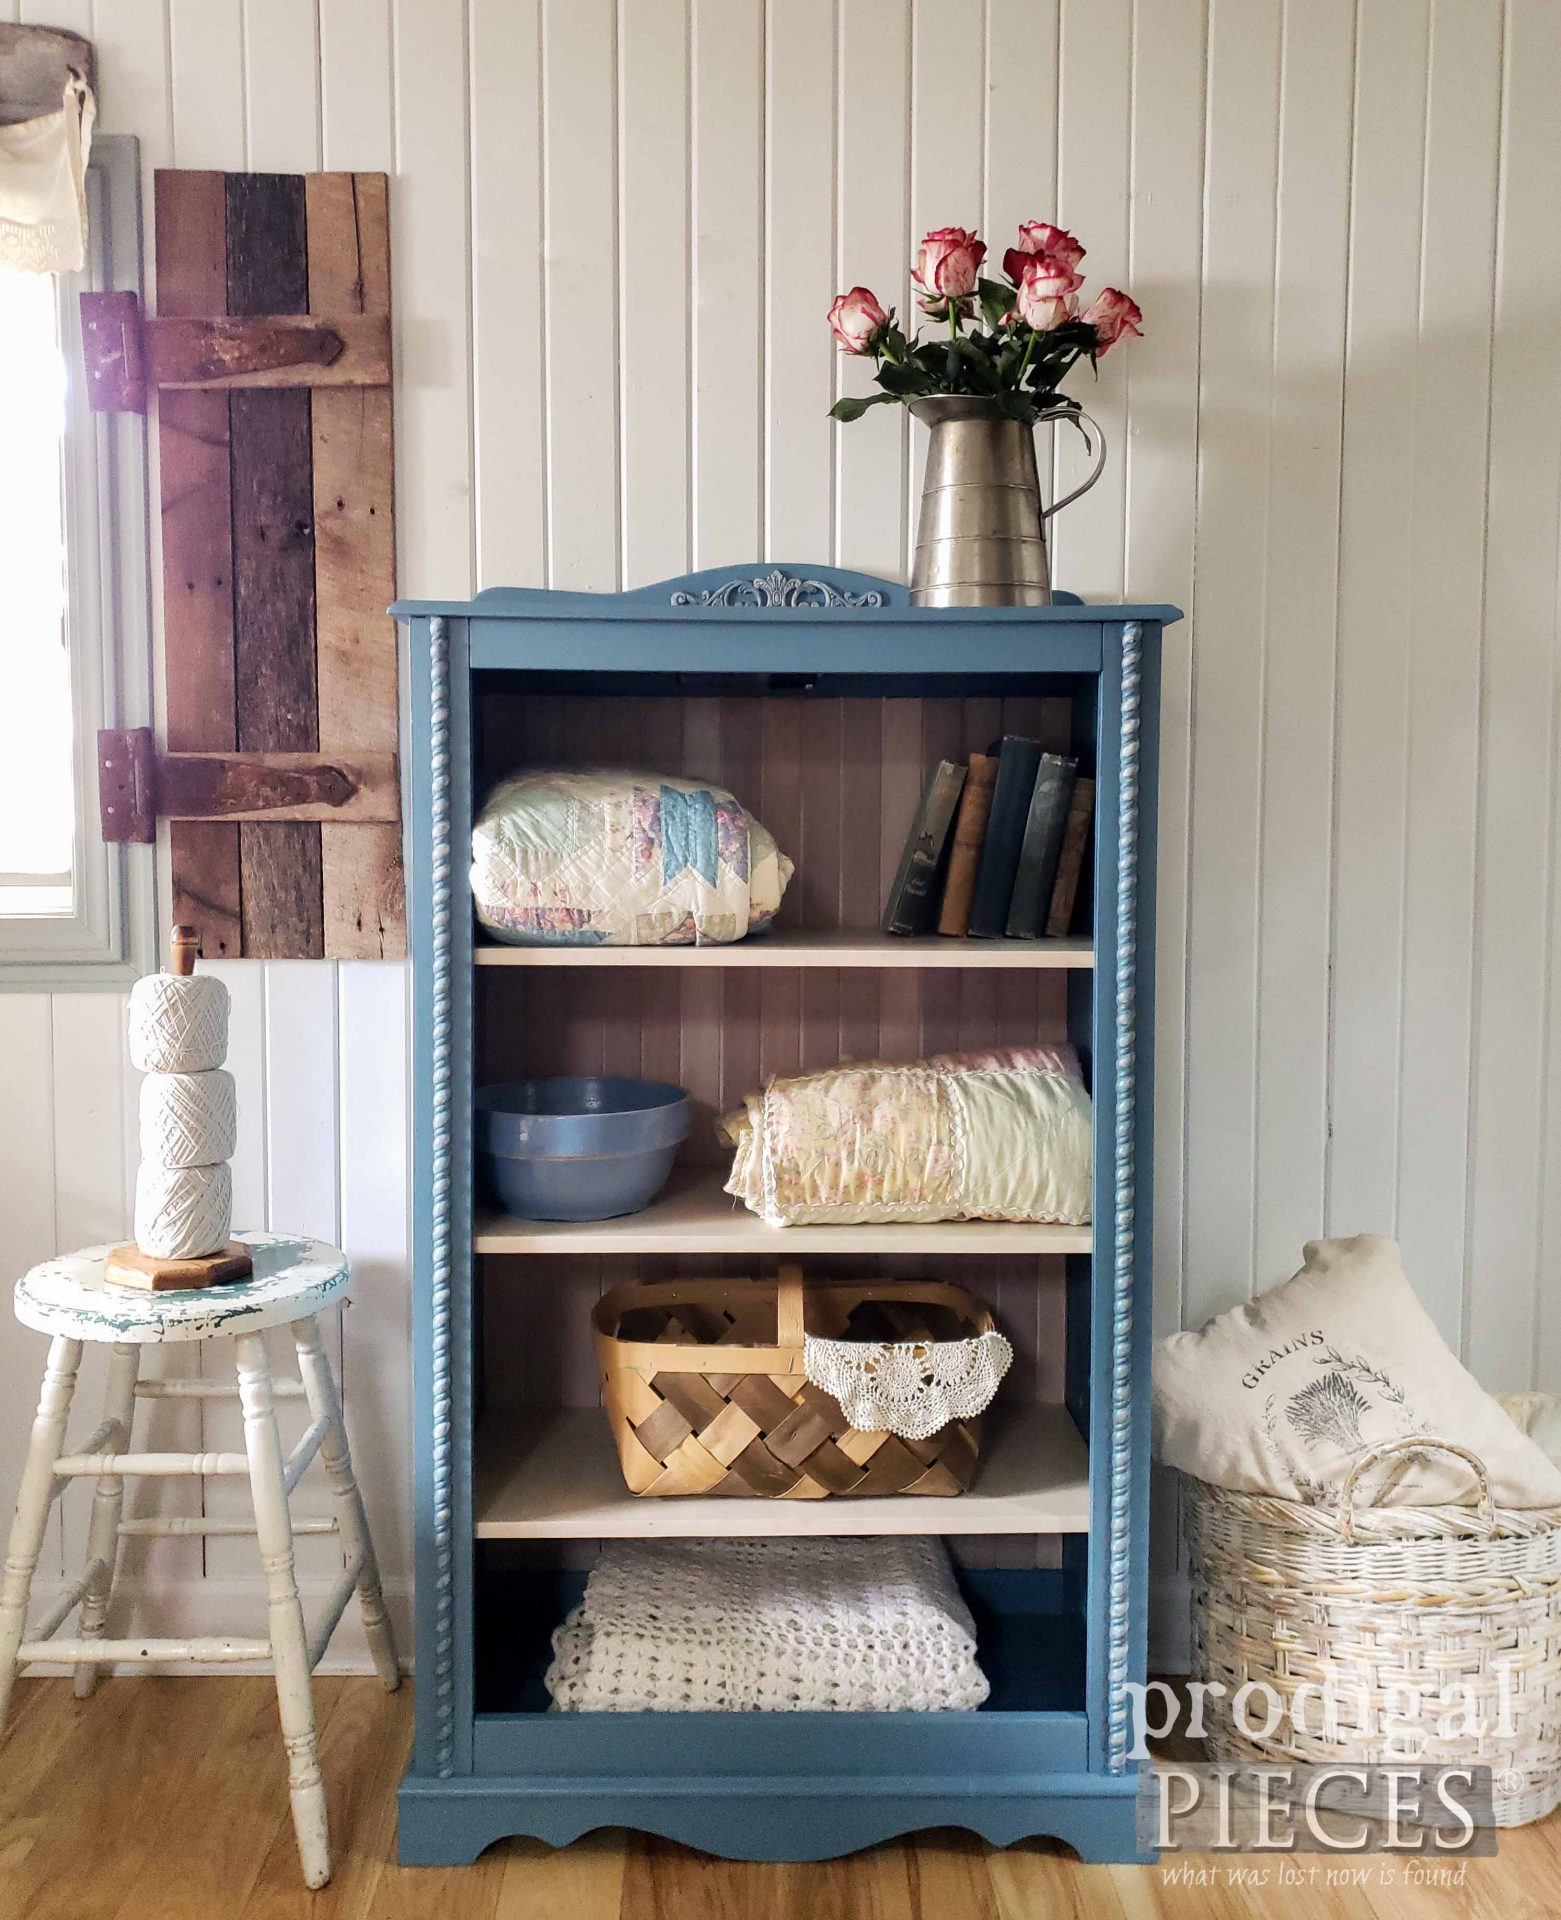 Beautiful Blue Cottage Cabinet from Upcycled Curio by Larissa of Prodigal Pieces | prodigalpieces.com #prodigalpieces #furniture #diy #home #homedecor #upcycled